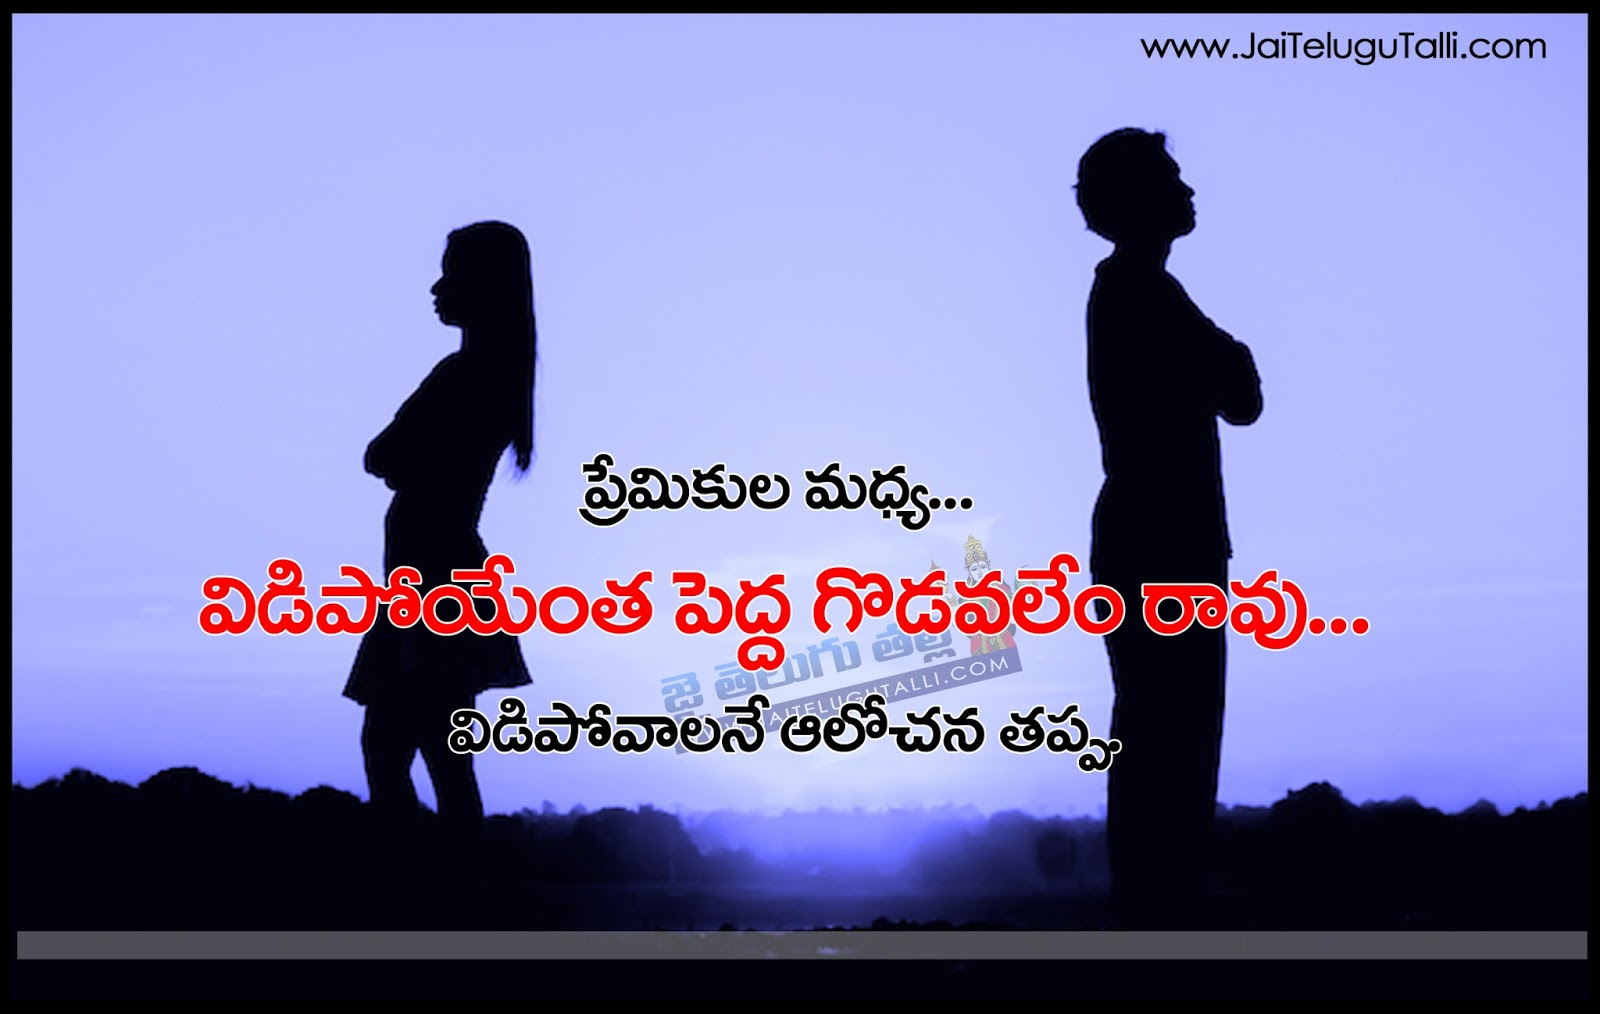 Telugu Love Quotes Amazing Love Quotes In Telugu Hd Pictures Cute Heart Touching Love